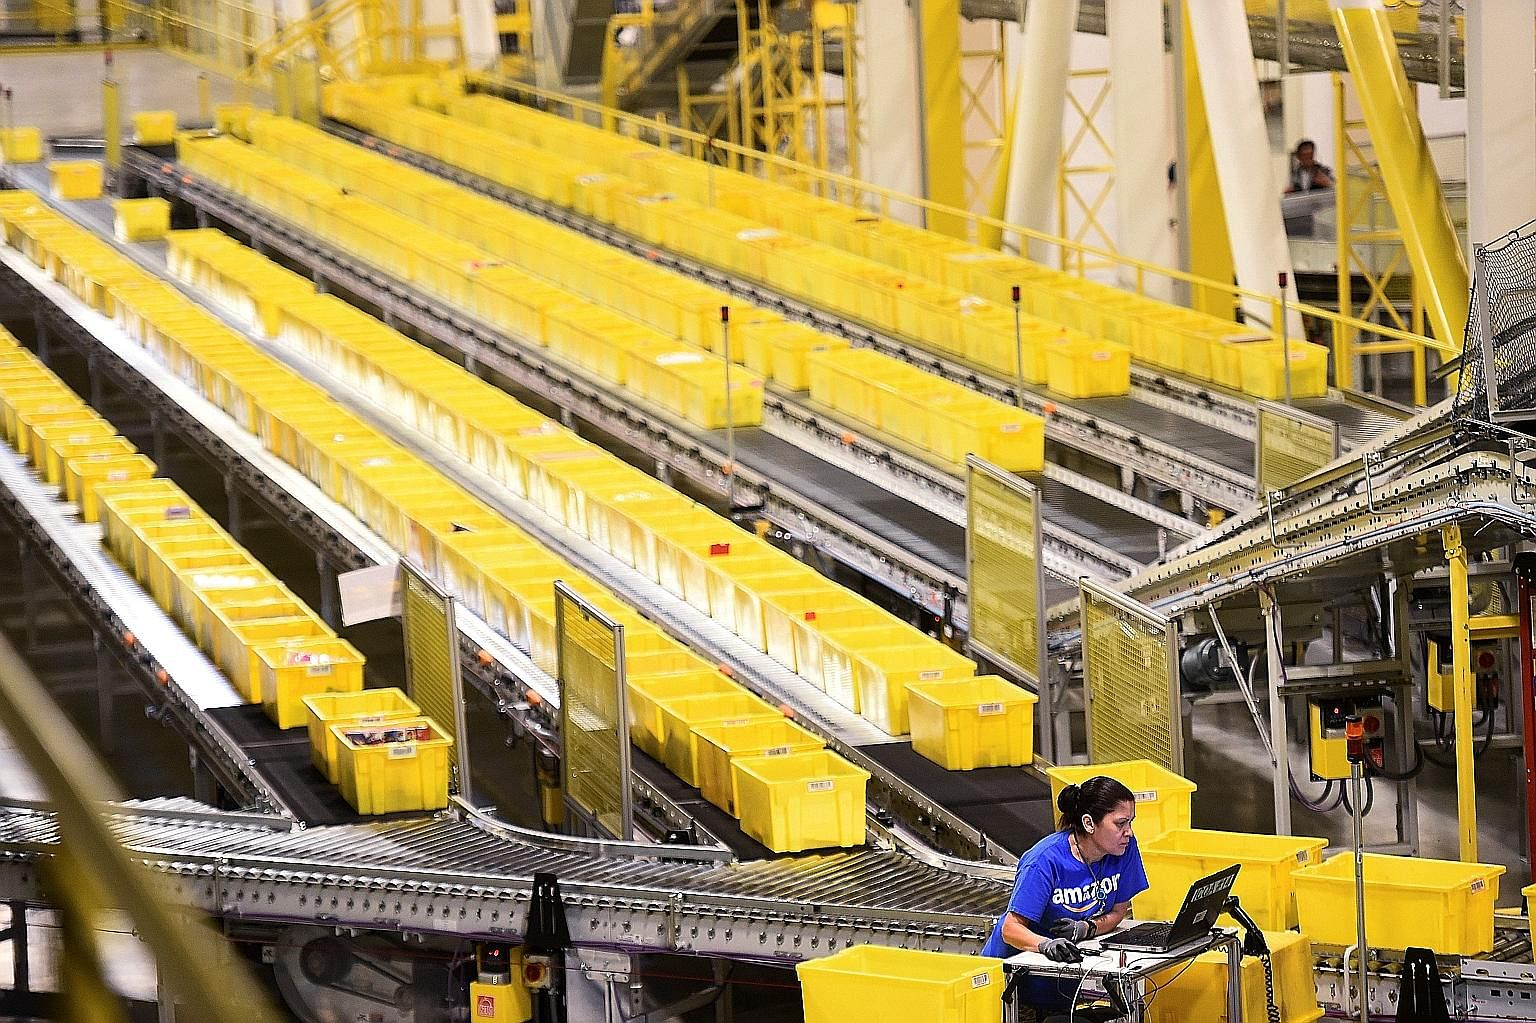 An employee auditing outgoing shipments moving along a conveyor belt at an Amazon facility in California. The firm is looking to transform the shipping industry, says Bloomberg columnist Adam Minter.